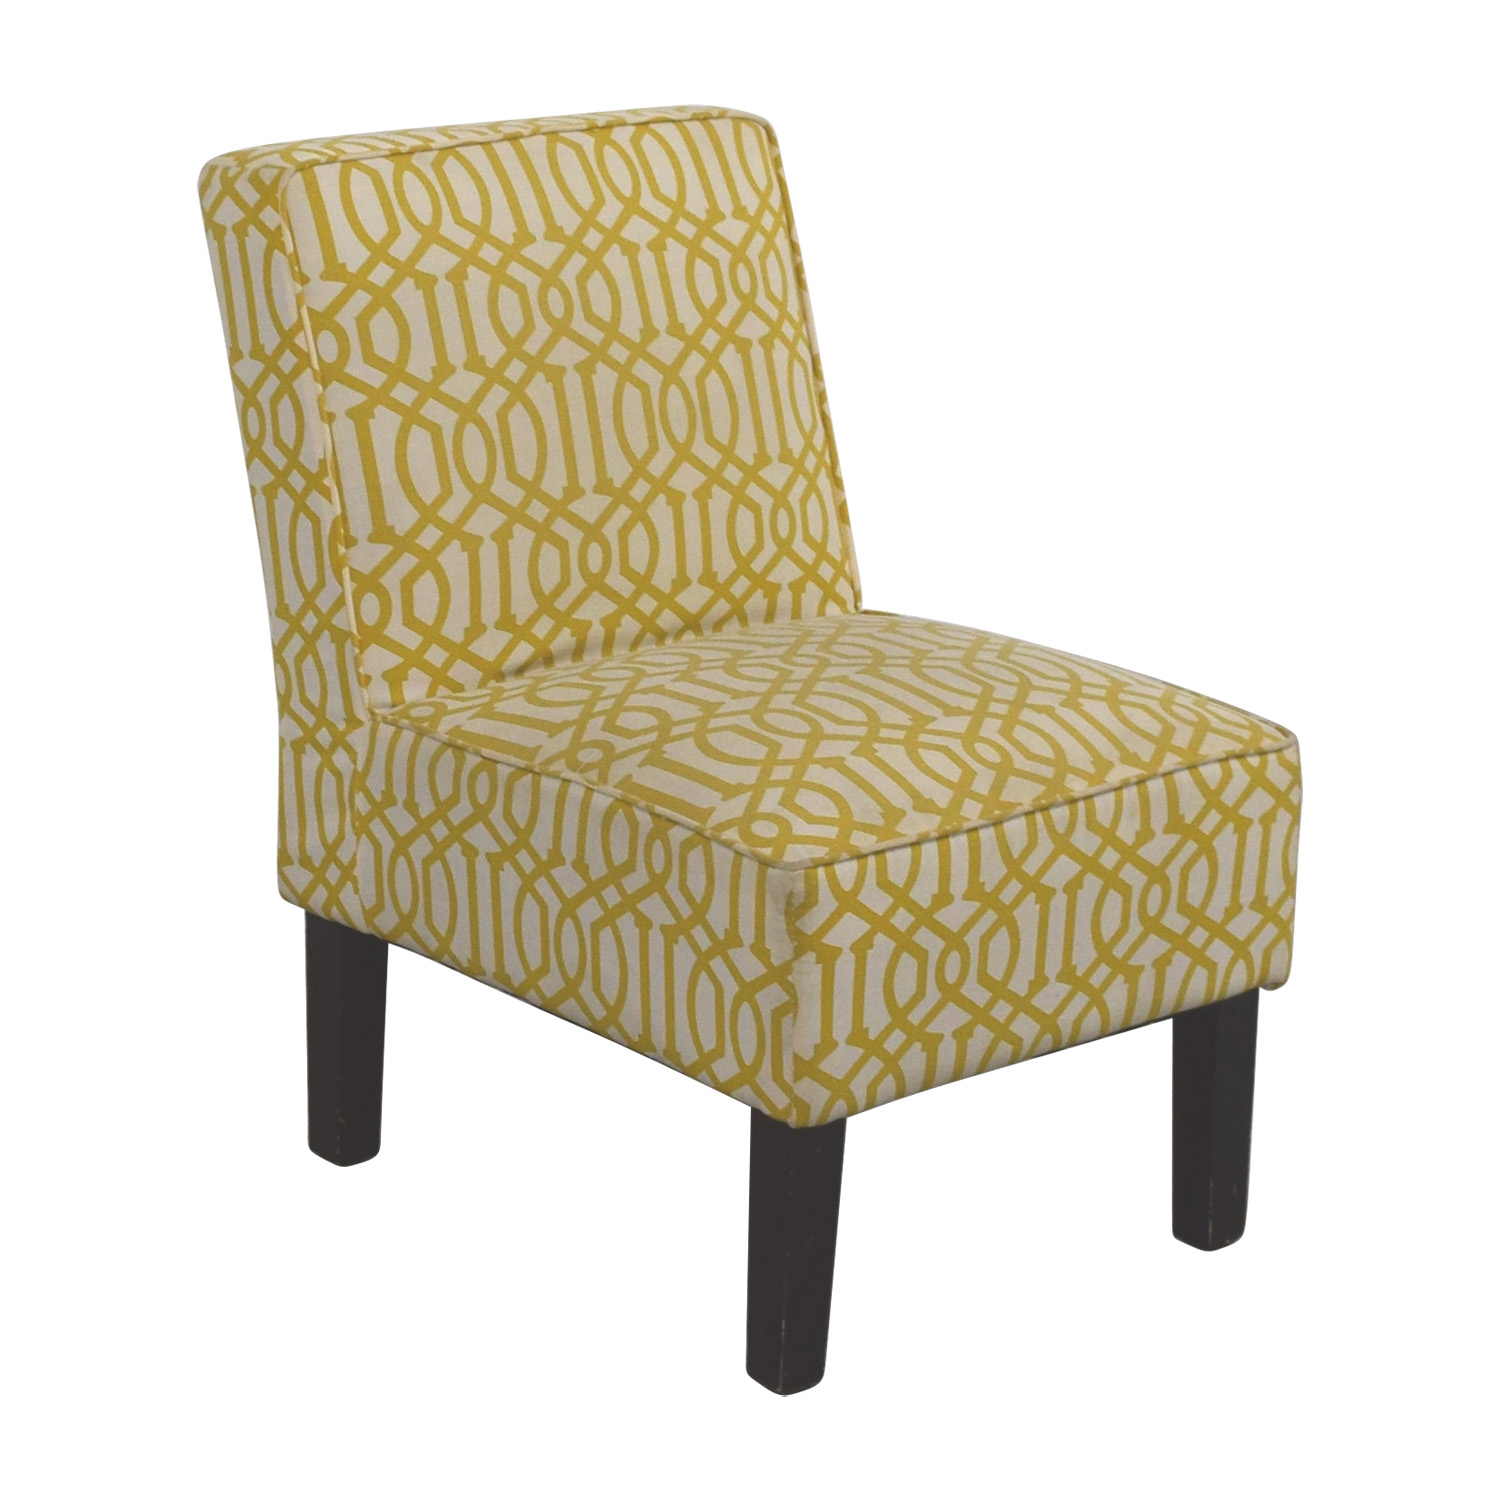 Accent Chairs For Sale 85 Off Yellow And White Accent Chair Chairs